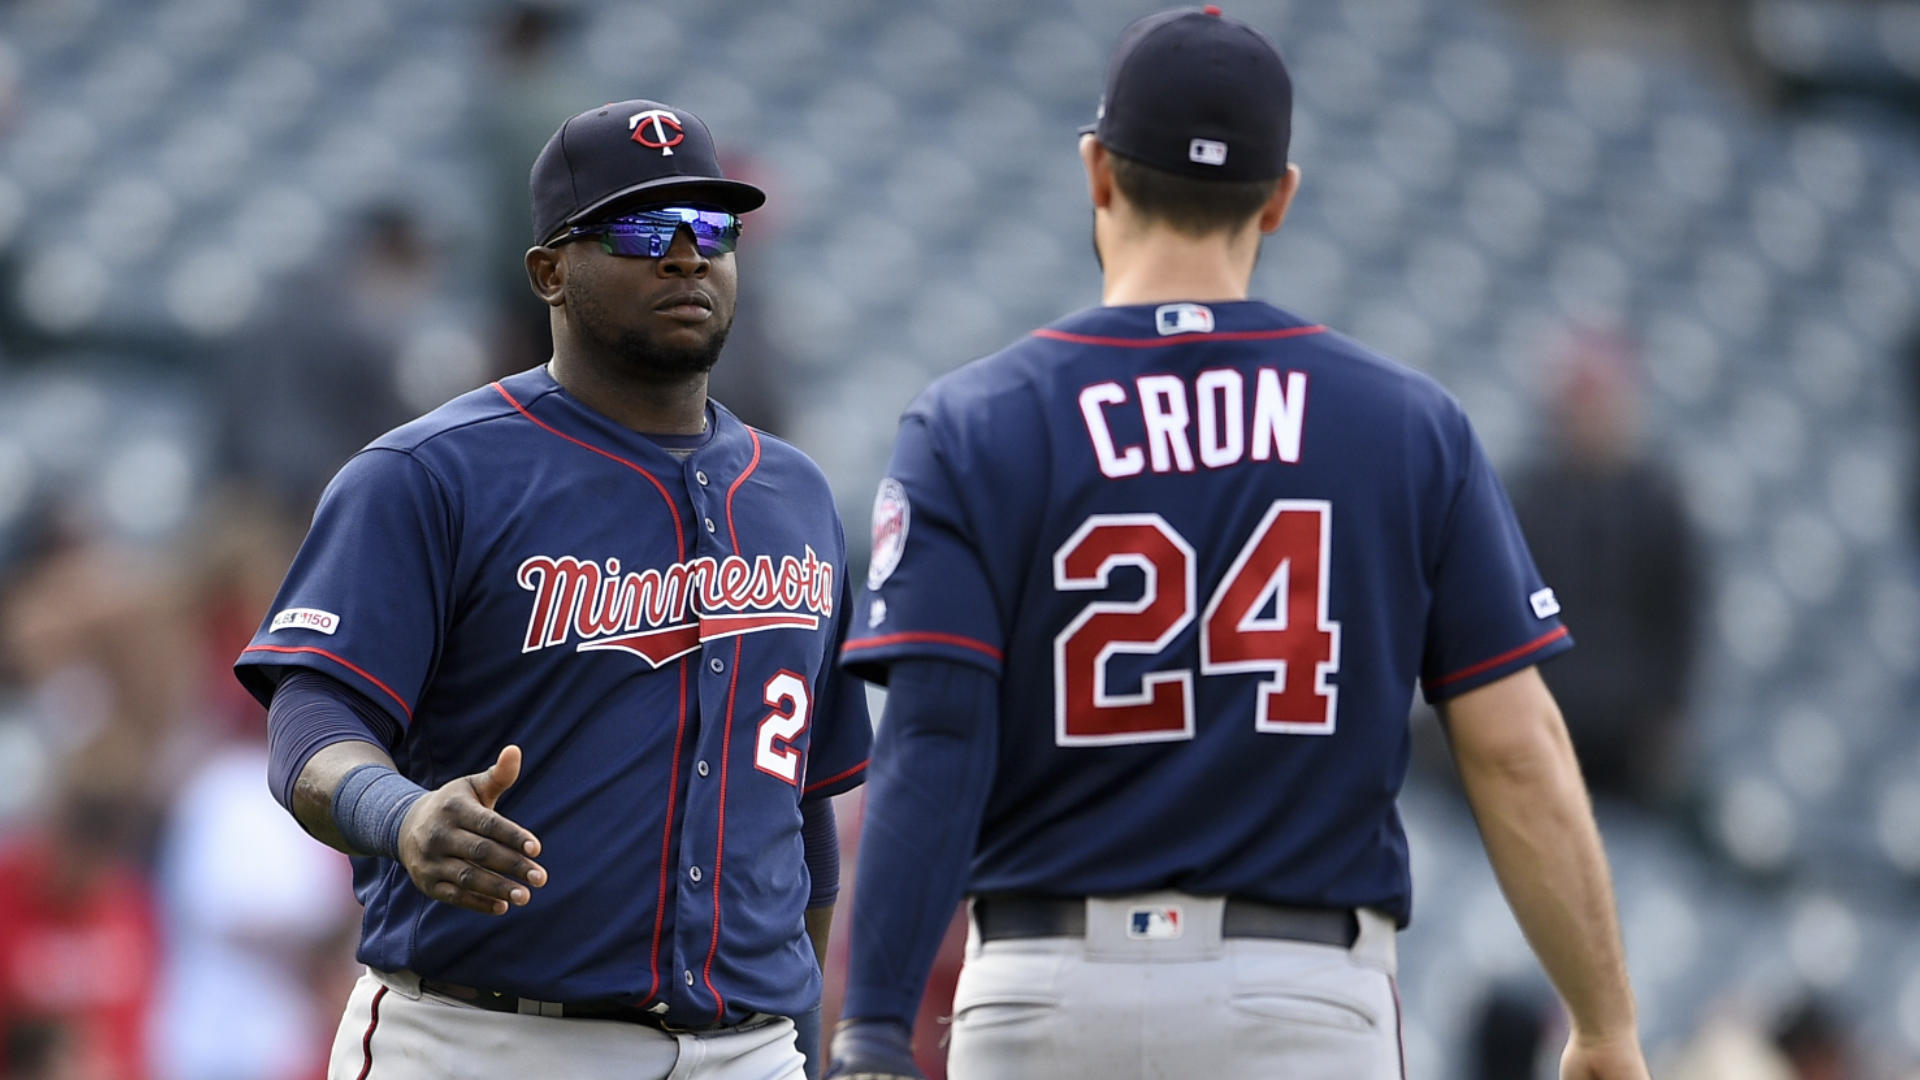 Twins are second team in MLB history to hit 100 home runs in their first 50 games